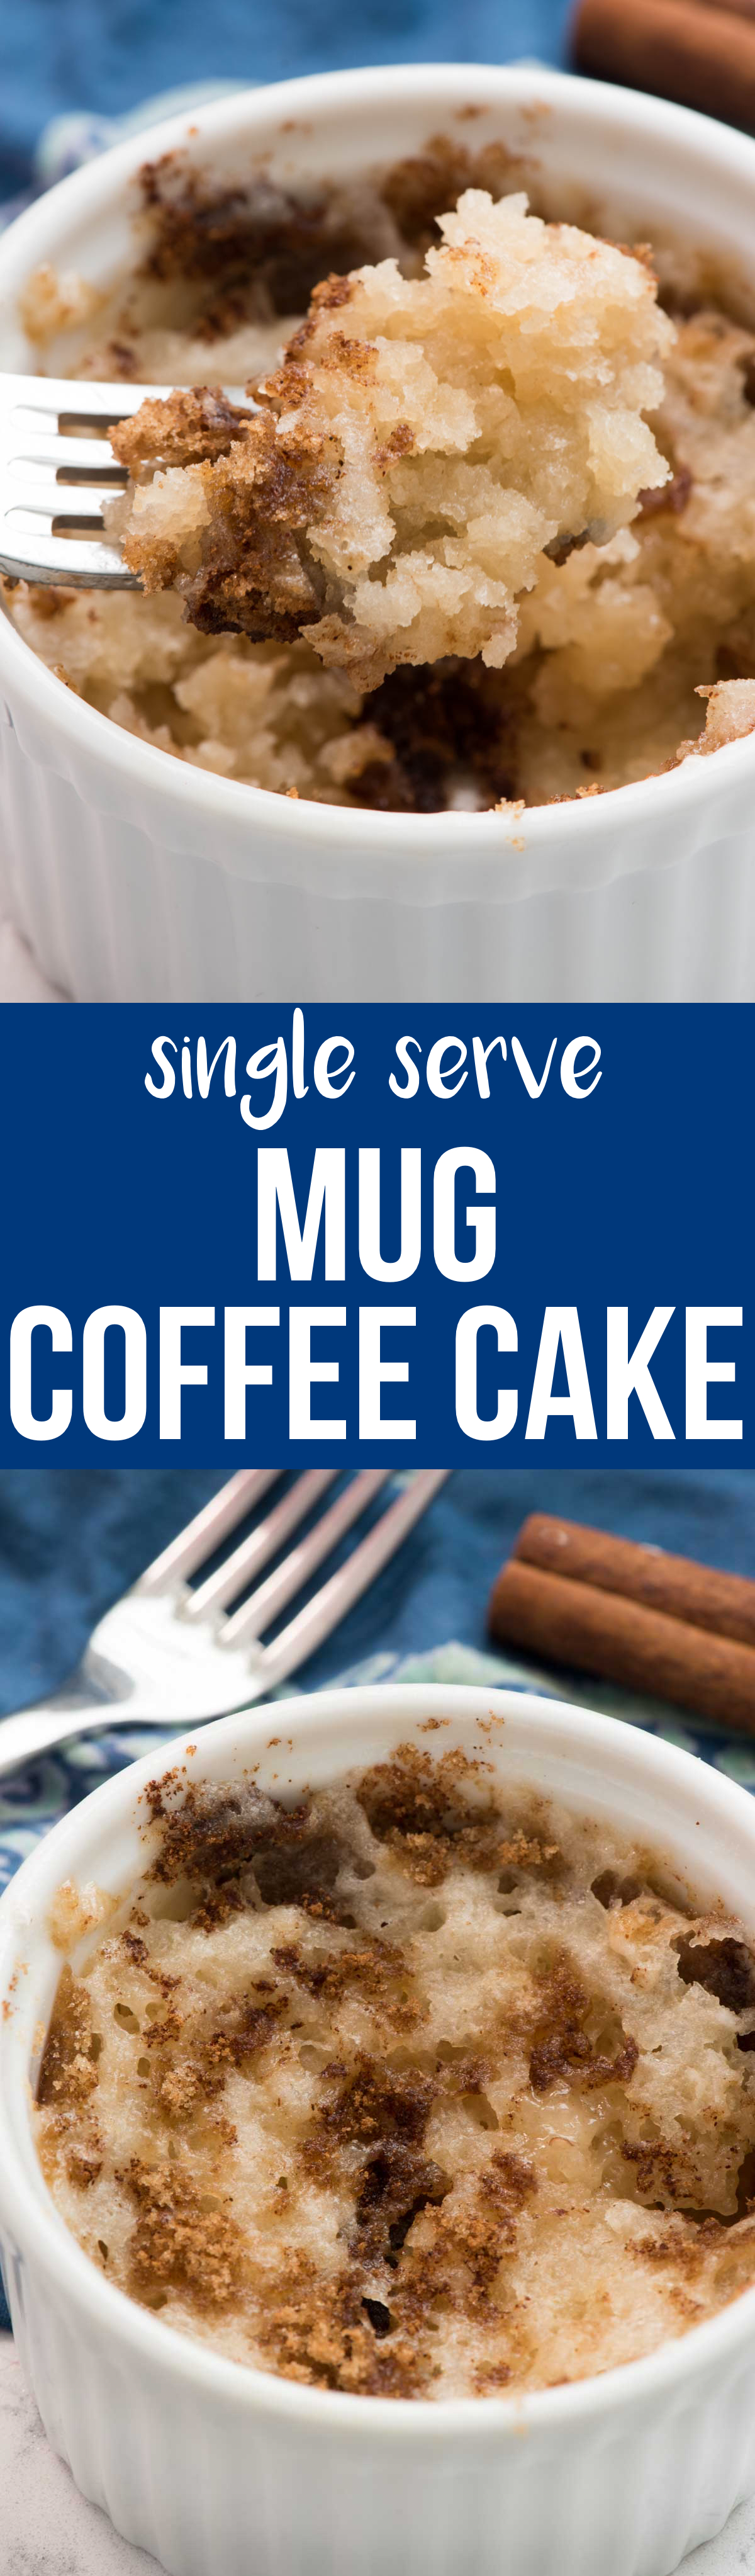 This Mug Coffee Cake recipe is a single serving of coffee cake for when you are craving a sweet breakfast! It stirs together quickly and cooks in 45 seconds and is the perfect small batch recipe for when you want a sweet treat.